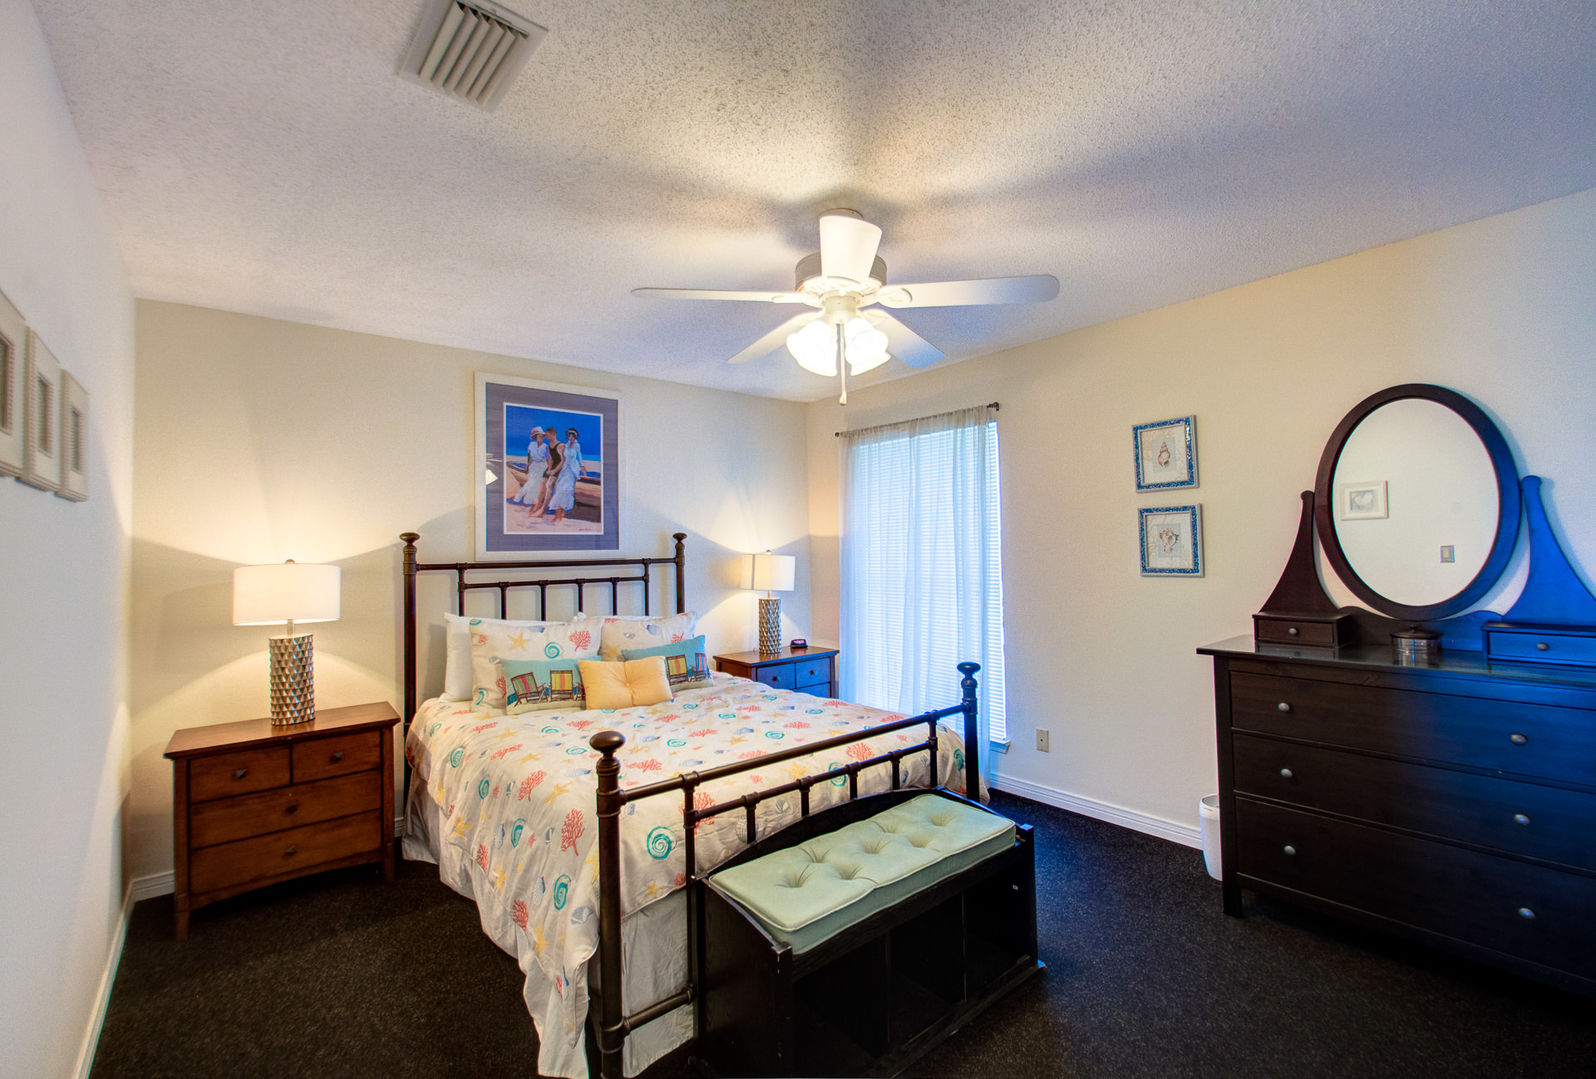 Bedroom Features Two Side Table and Dresser.